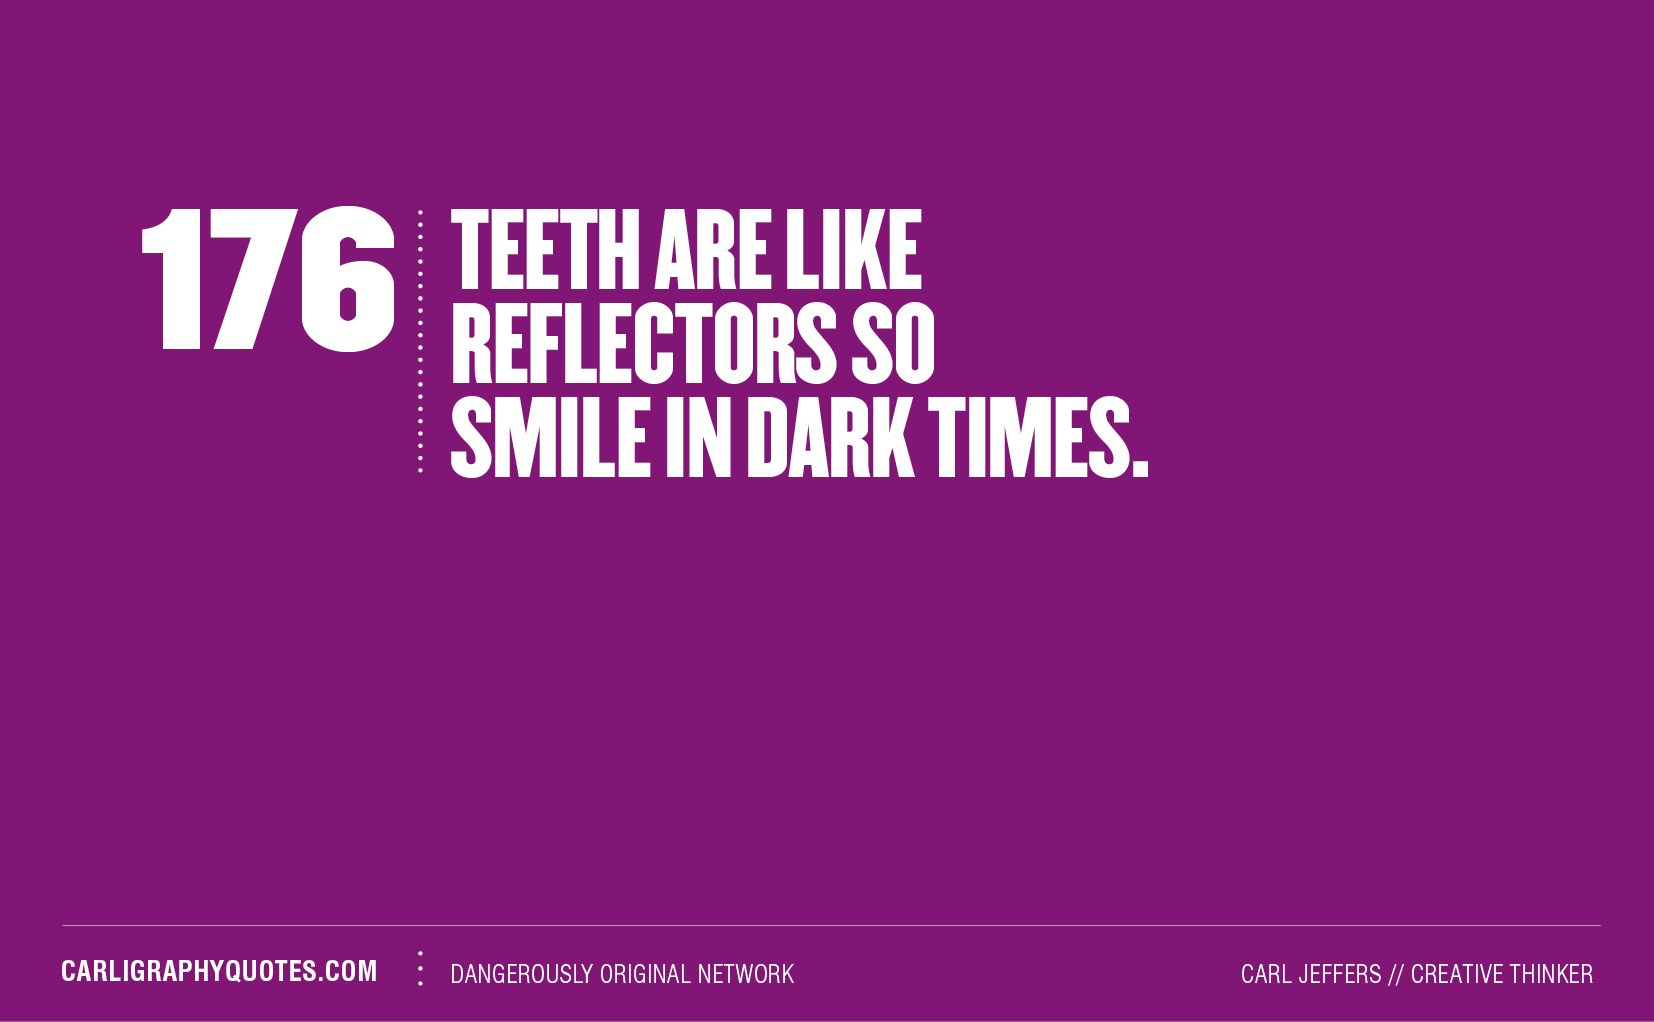 Dental Quotes Teeth Smile  Pinterest  Teeth Dental And Dental Quotes